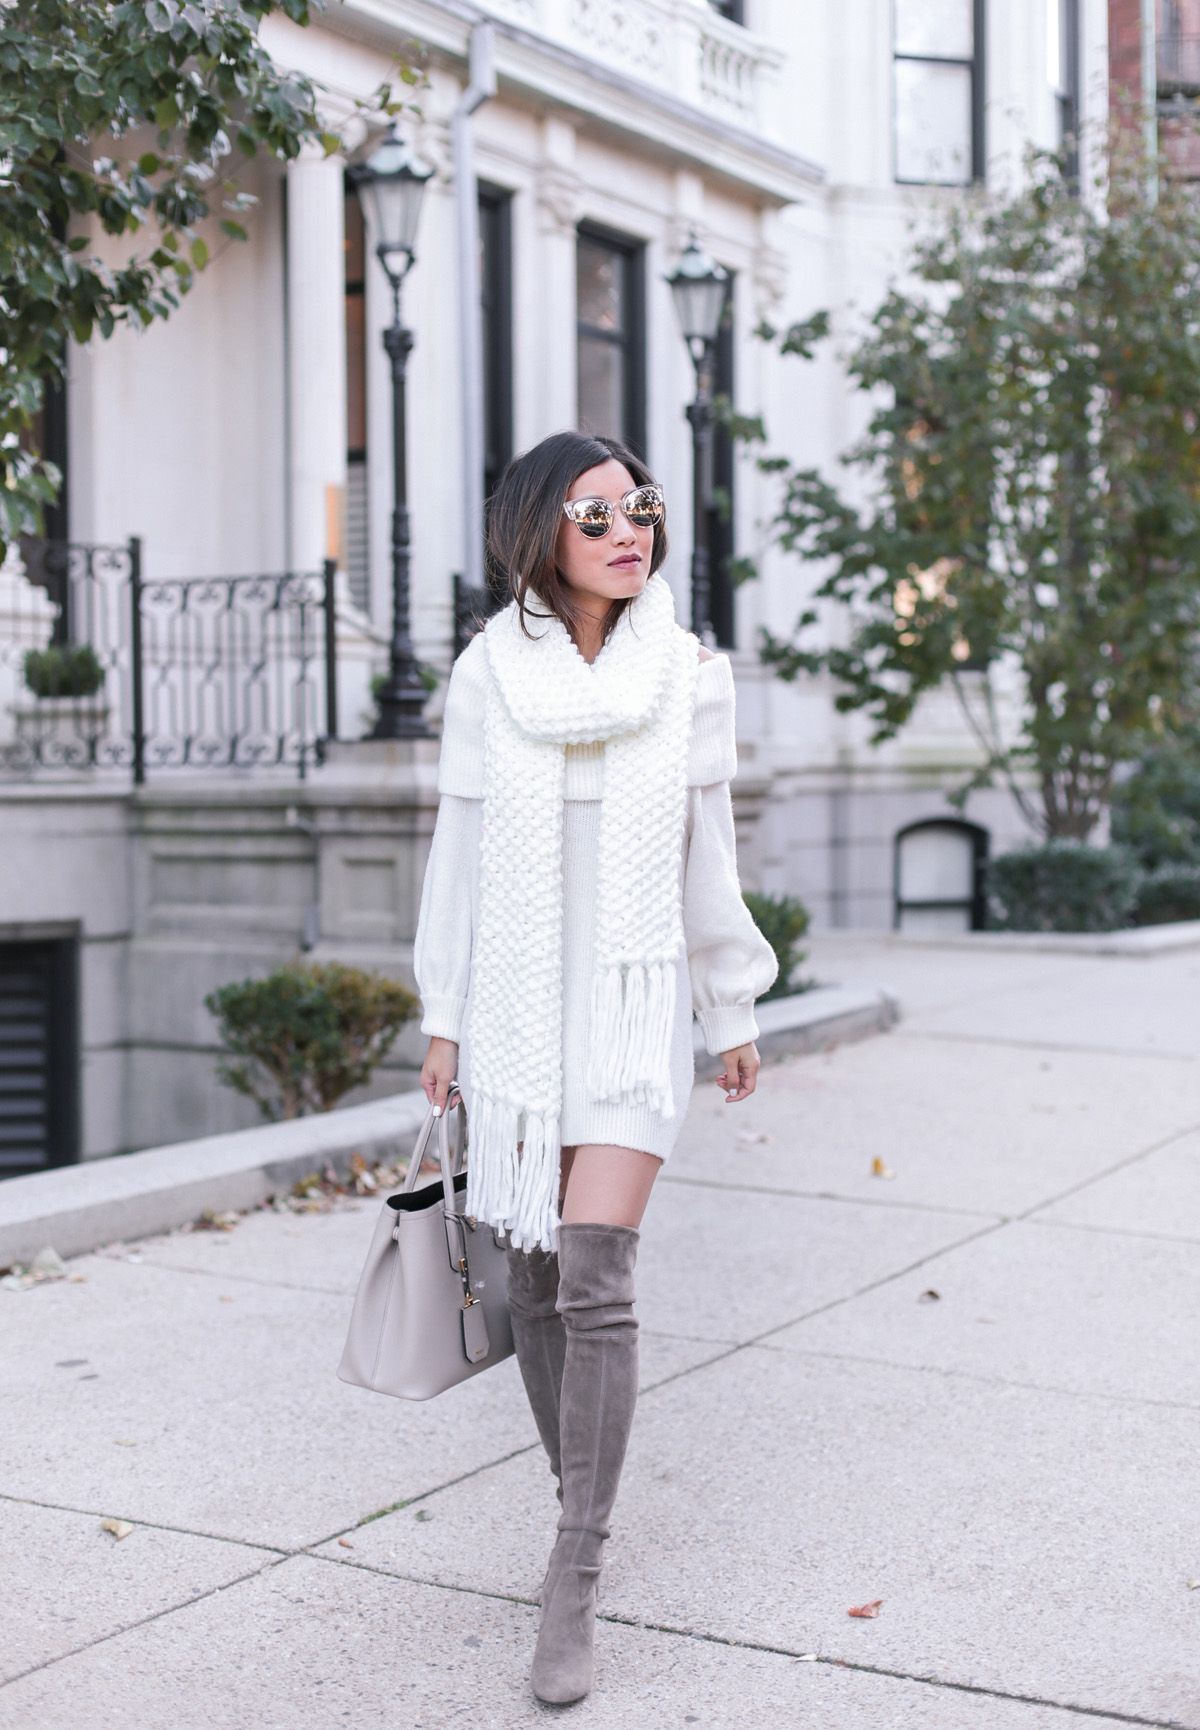 48550ba3393 Cream sweater dress + chunky knit scarf+taupe over the knee boots+taupe  handbag+sunglasses. Fall Casual Outfit 2017